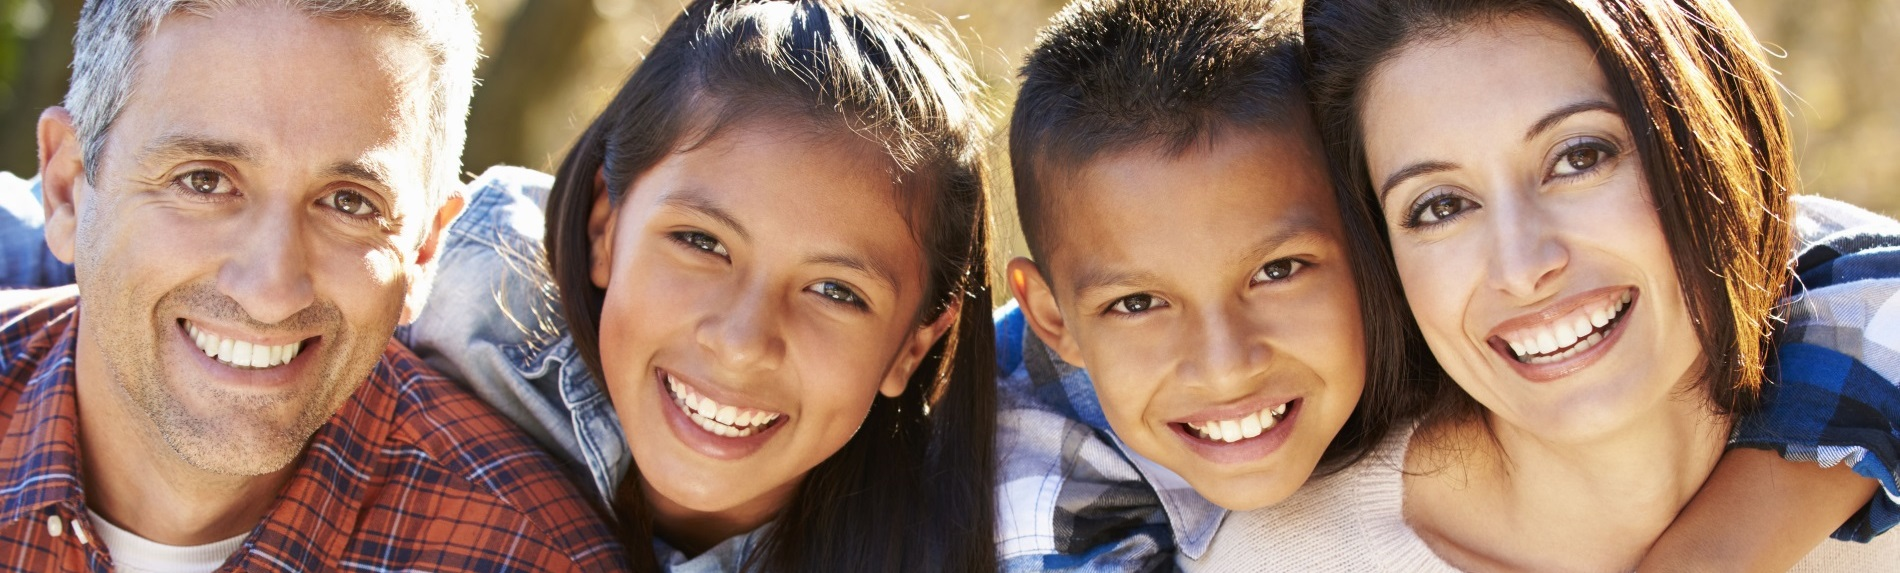 A happy family portrays the concept of who we serve at Discovery Smiles Dentistry.